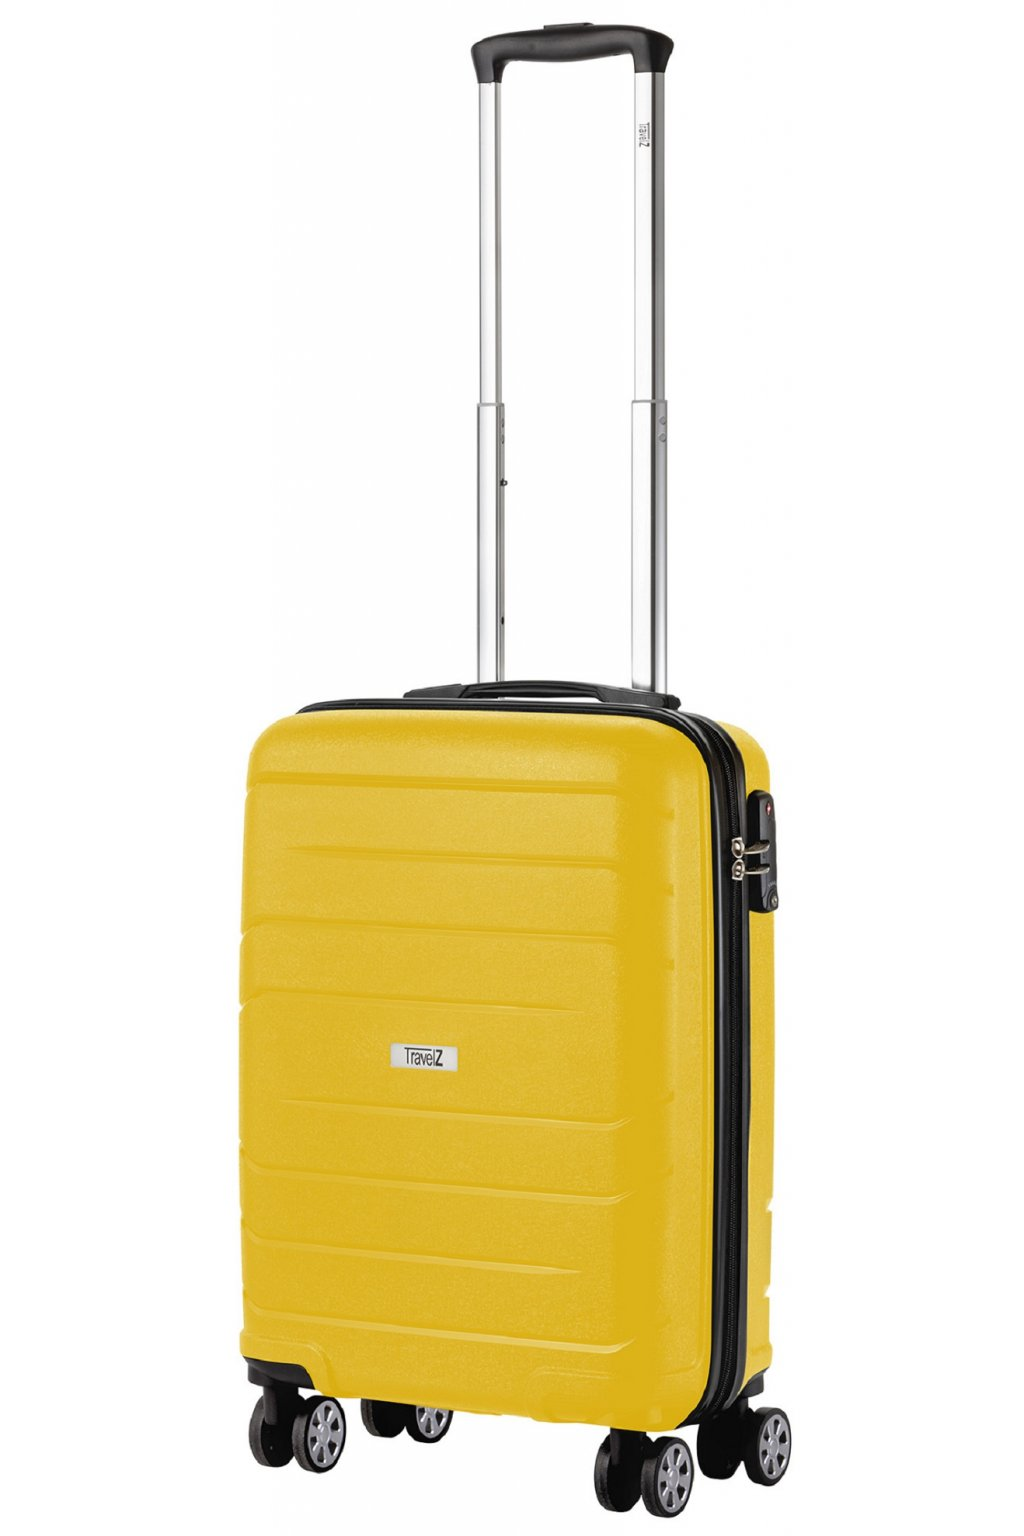 kufrland travelz bigbars yellow (3)